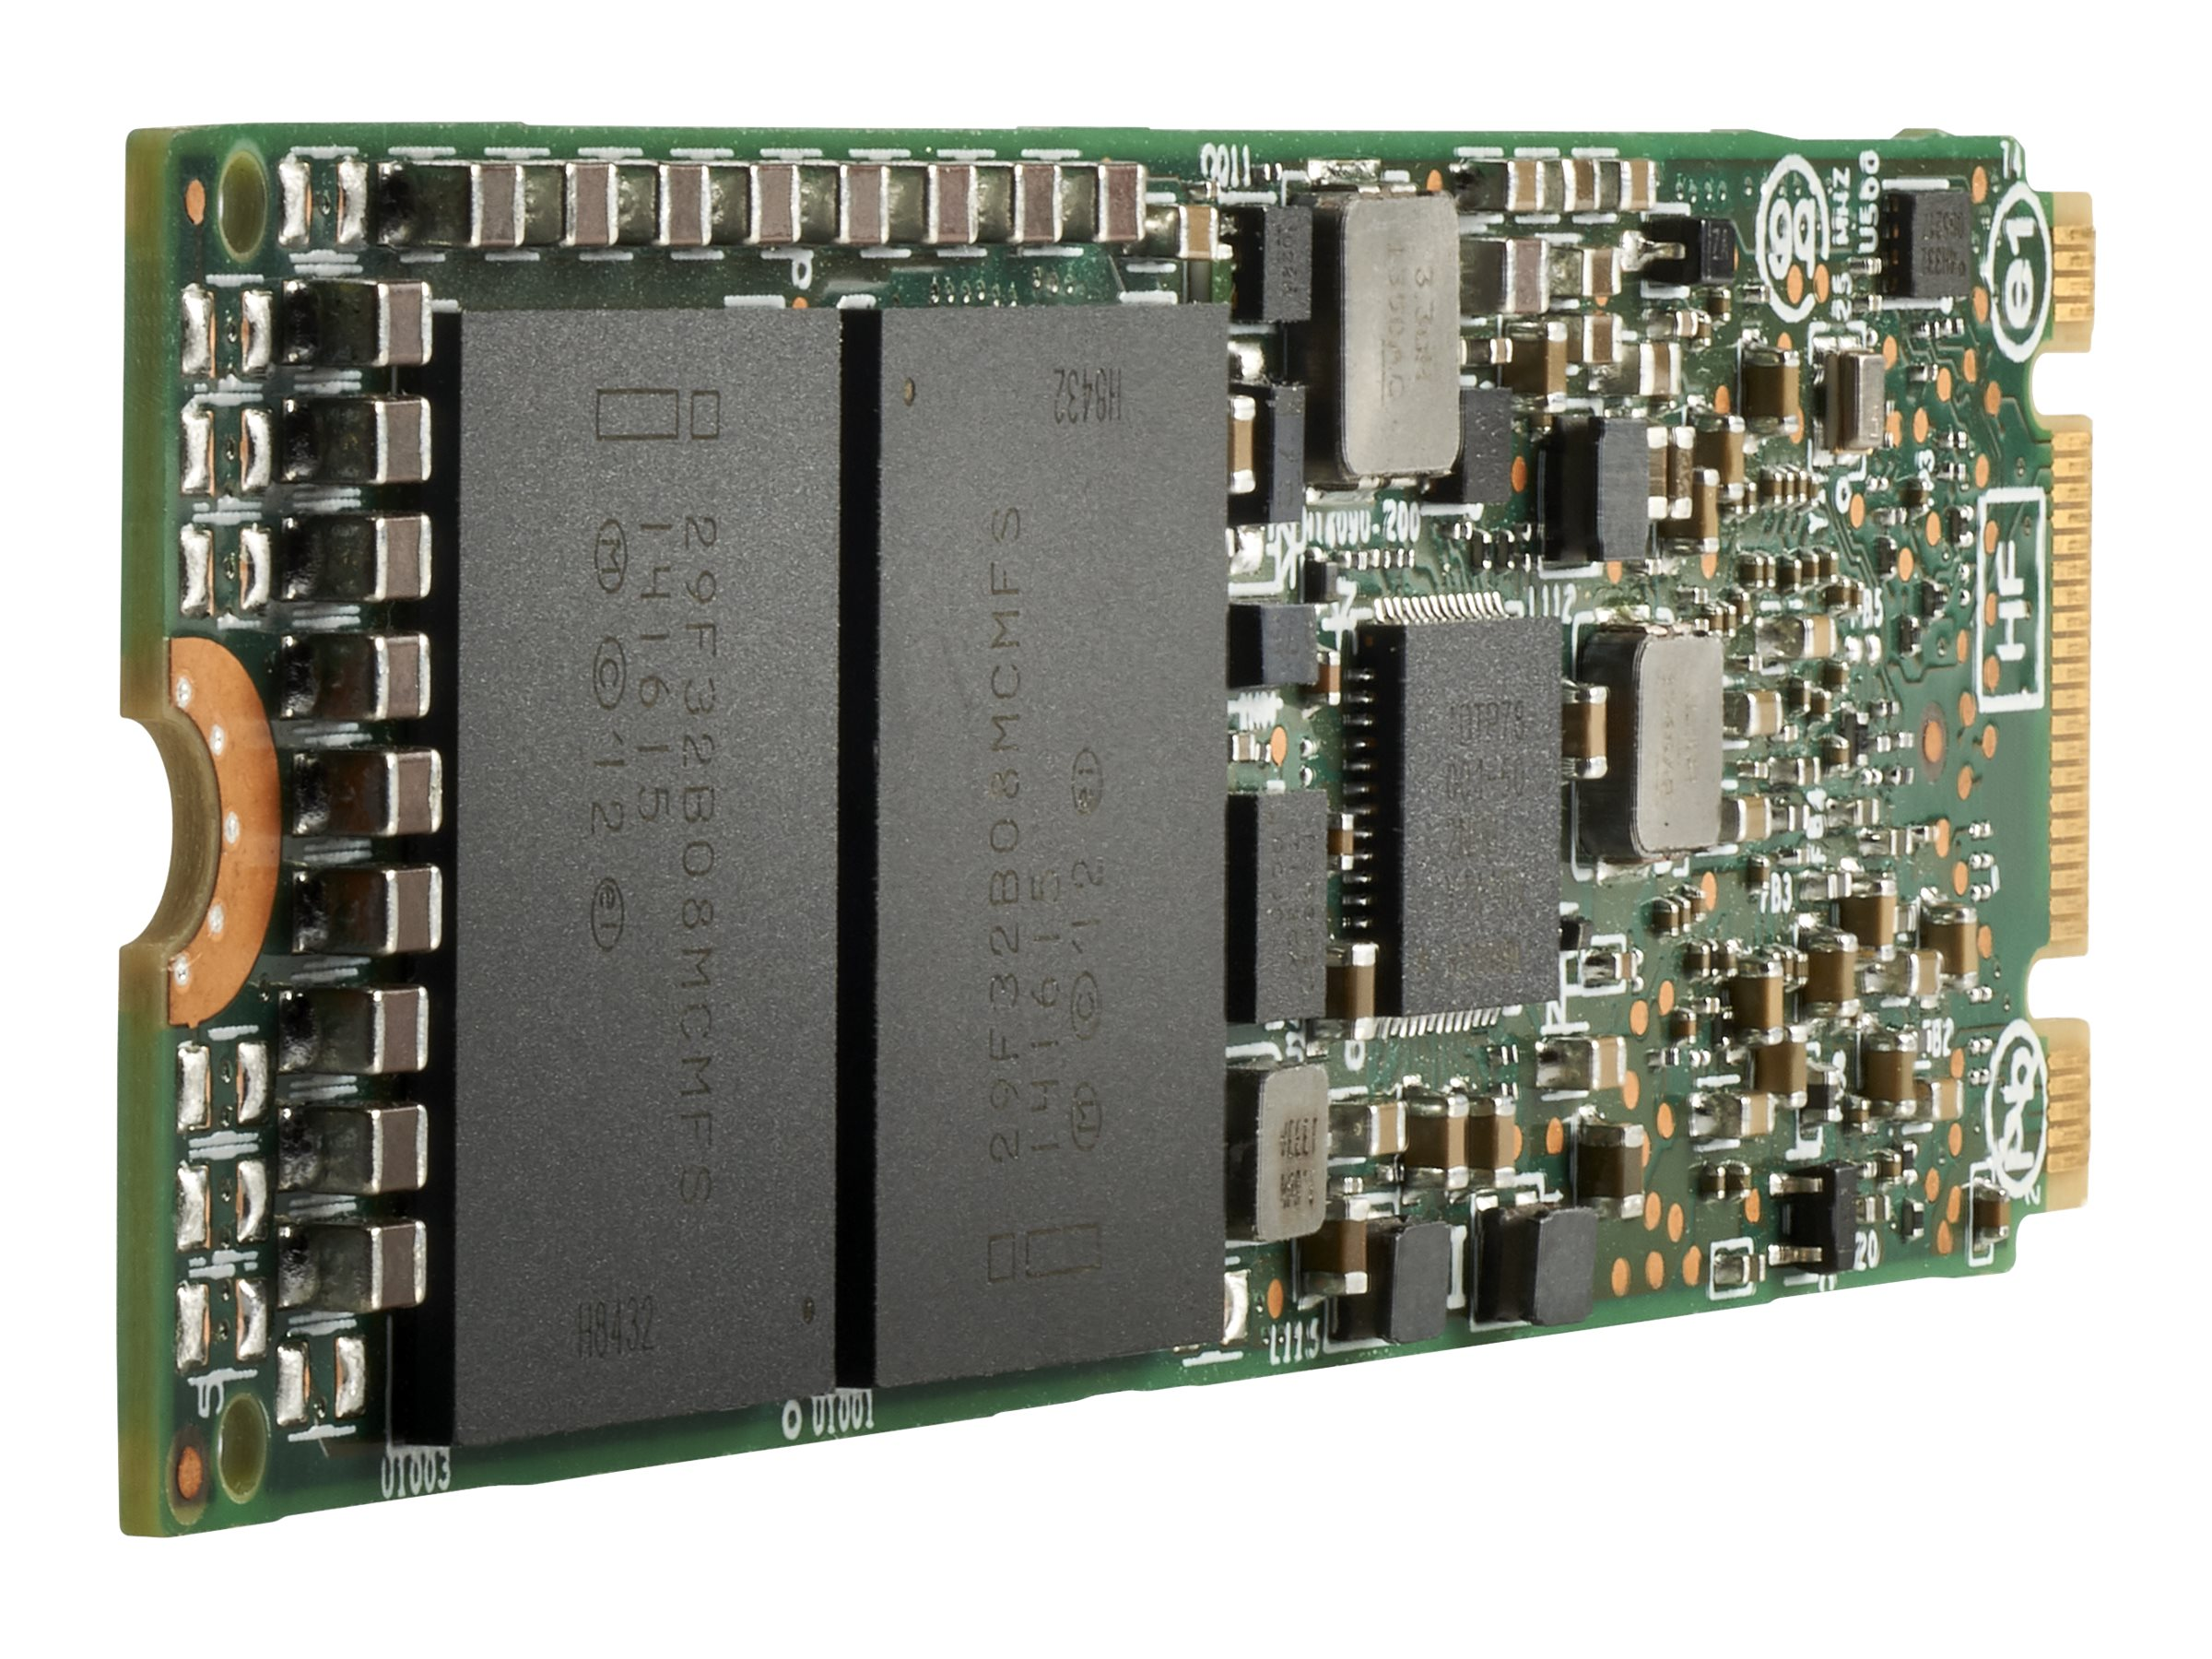 HPE Read Intensive - solid state drive - 512 GB - PCI Express x4 (NVMe)